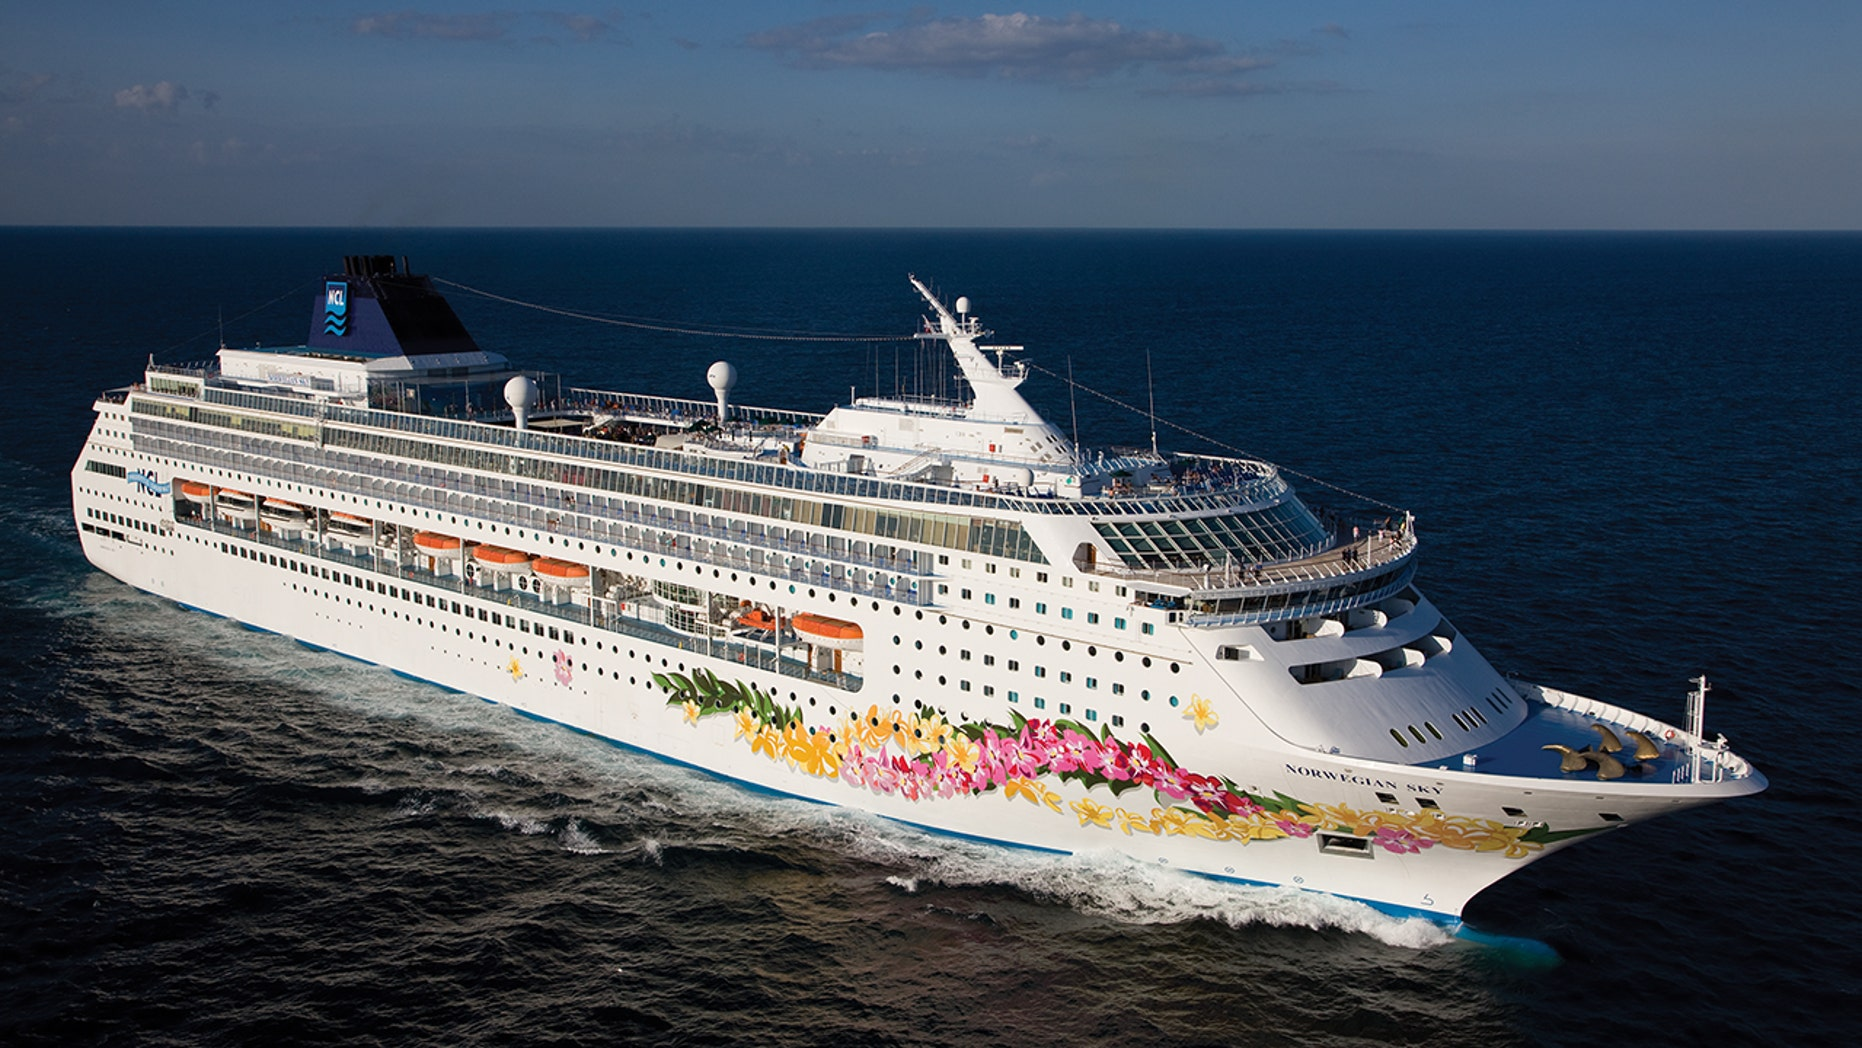 Kevin Rohrer's and his girlfriend's vacation ended abruptly in Havana,Cubaafter their cruise ship left without them on a recent four-night Norwegian Cruise Line sailing in theCaribbean.